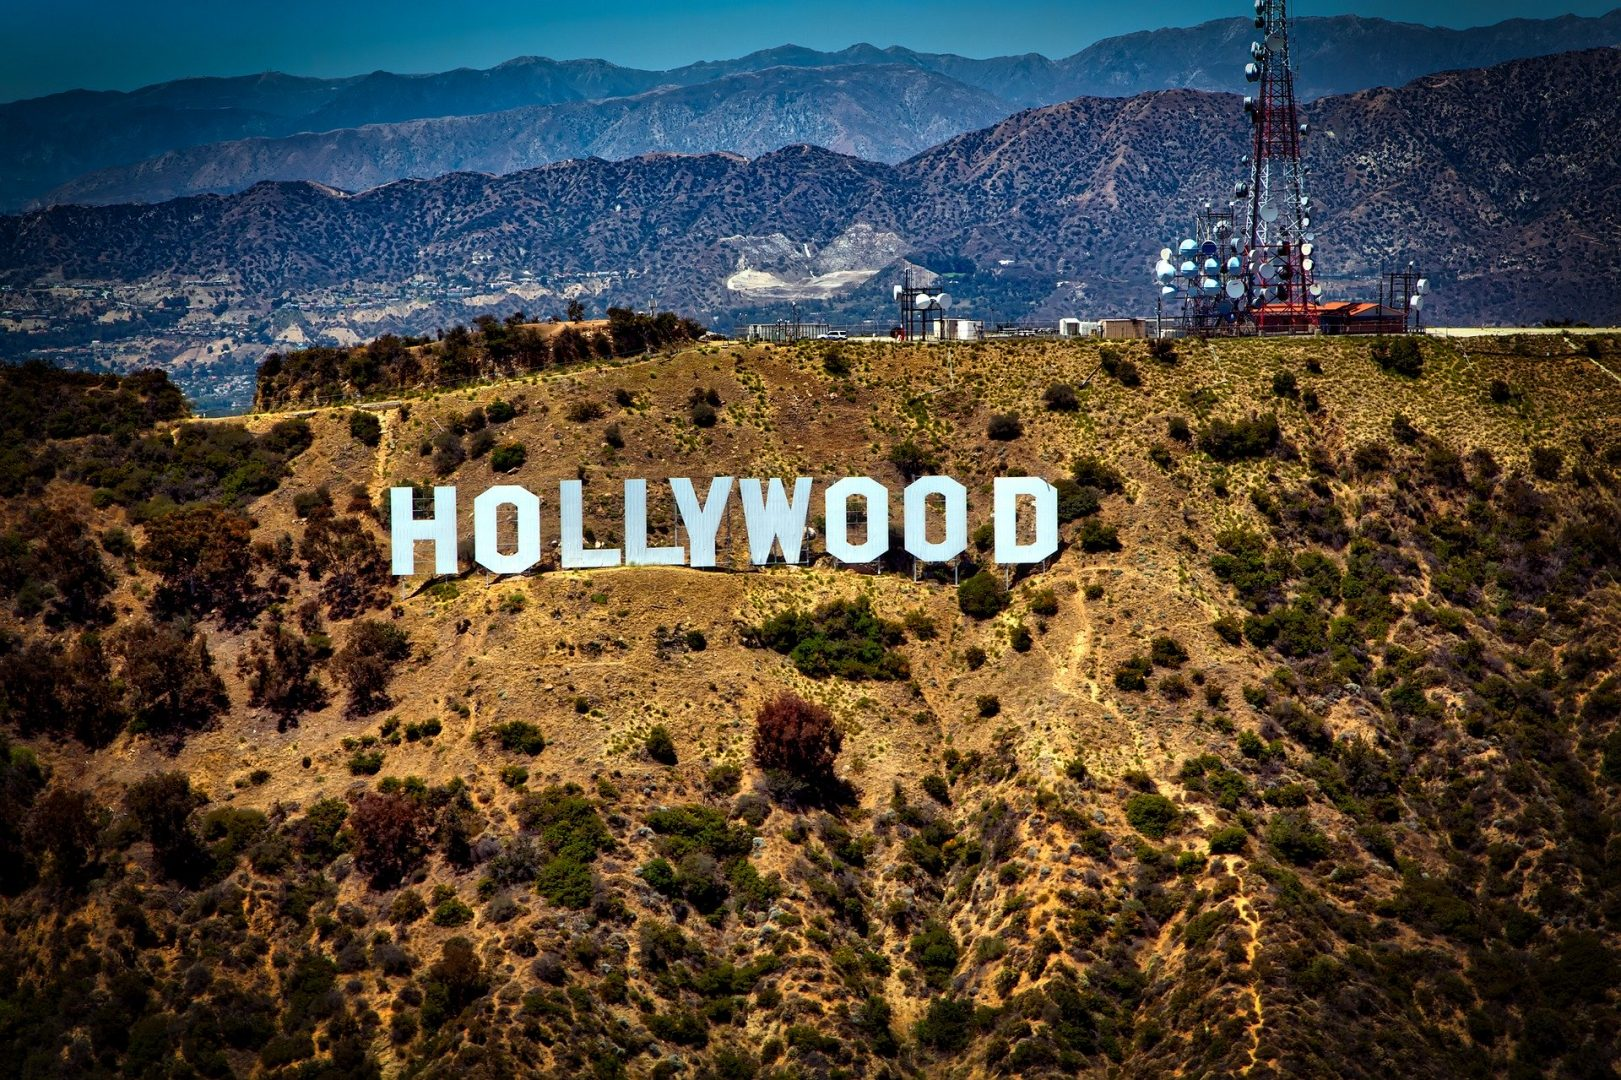 hollywood-sign-1598473_1920-los-angeles